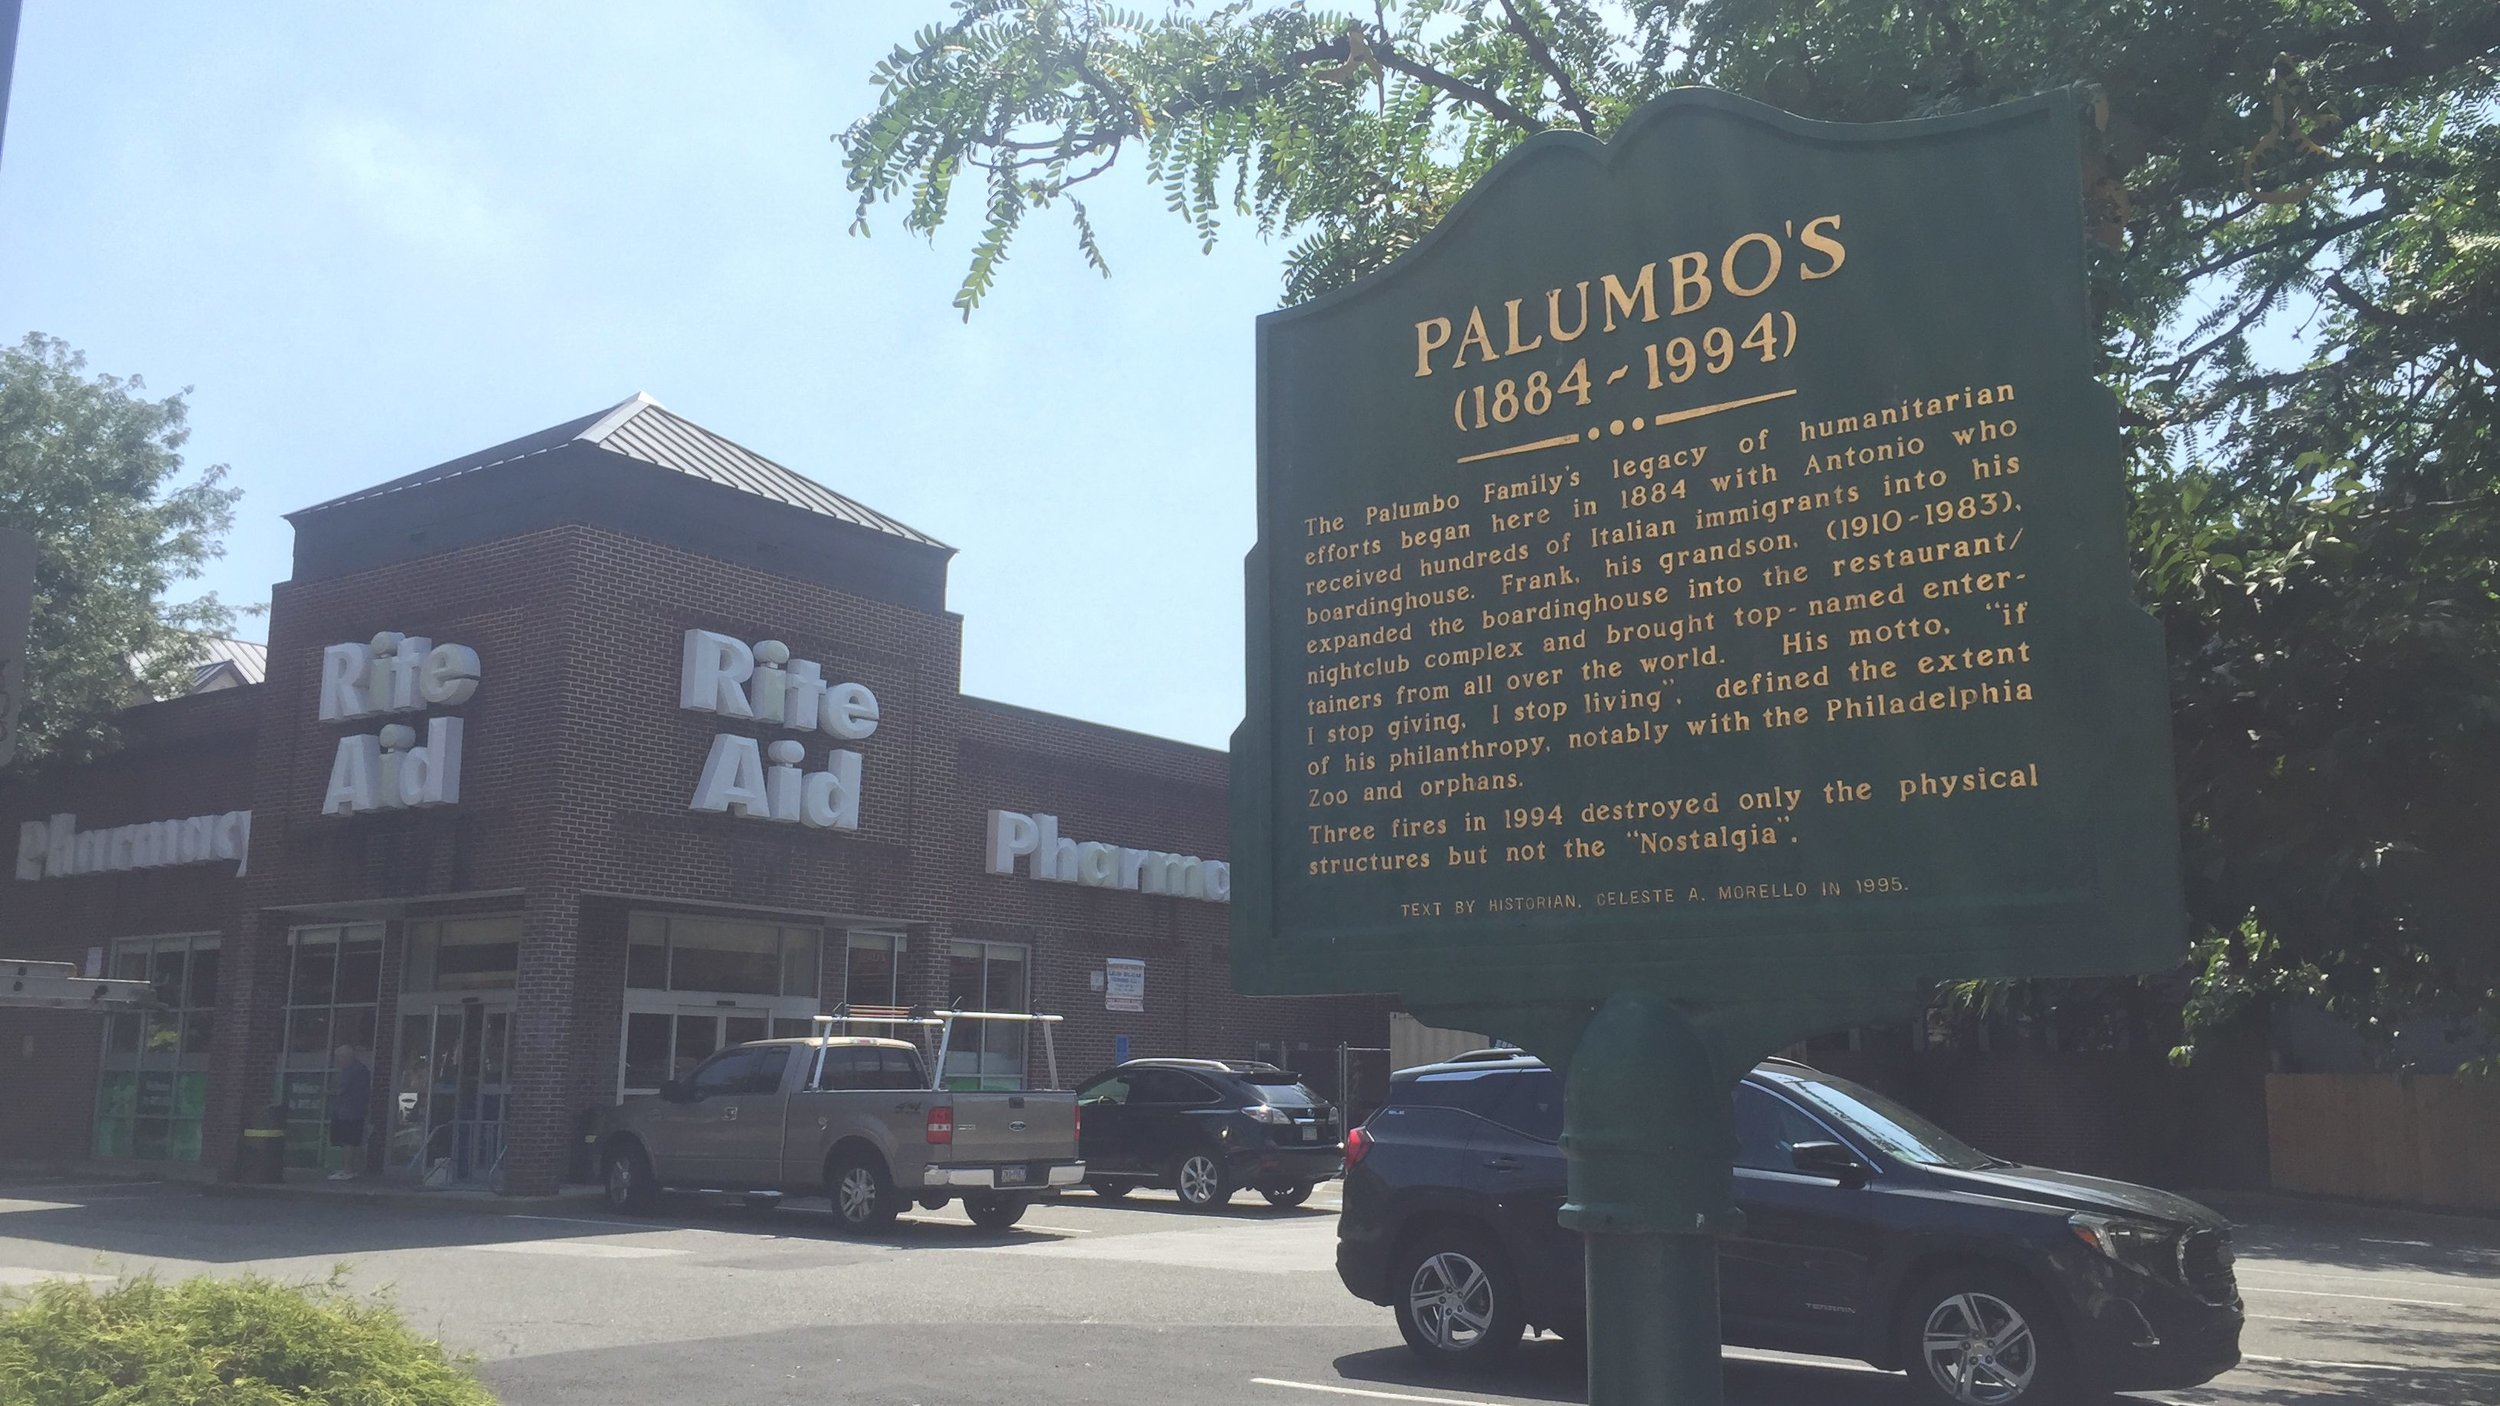 Palumbos - Exploring Philly's Italian Market with Zeeno - Her Bags Were Packed